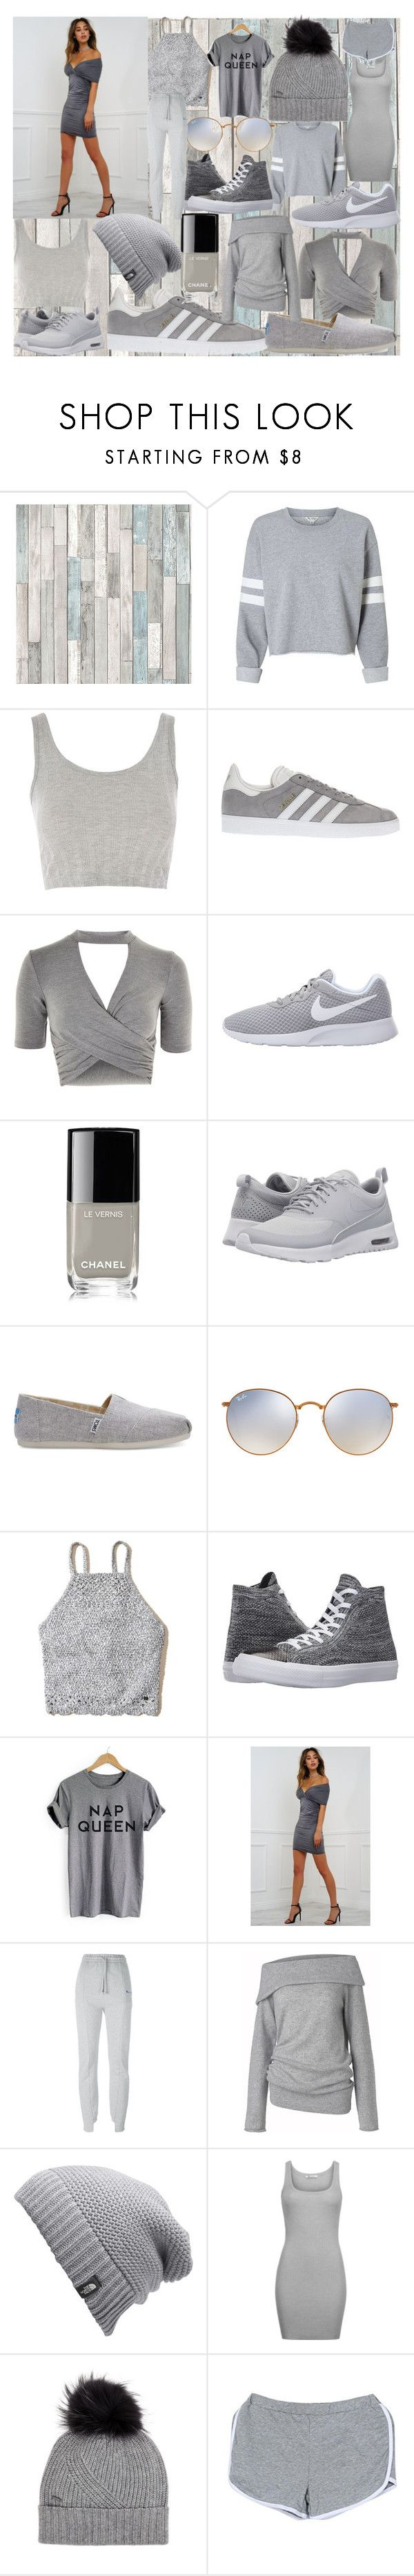 """""""GREY"""" by andieok on Polyvore featuring Topshop, adidas, NIKE, Chanel, TOMS, Ray-Ban, Hollister Co., Converse, Vetements and Care By Me"""